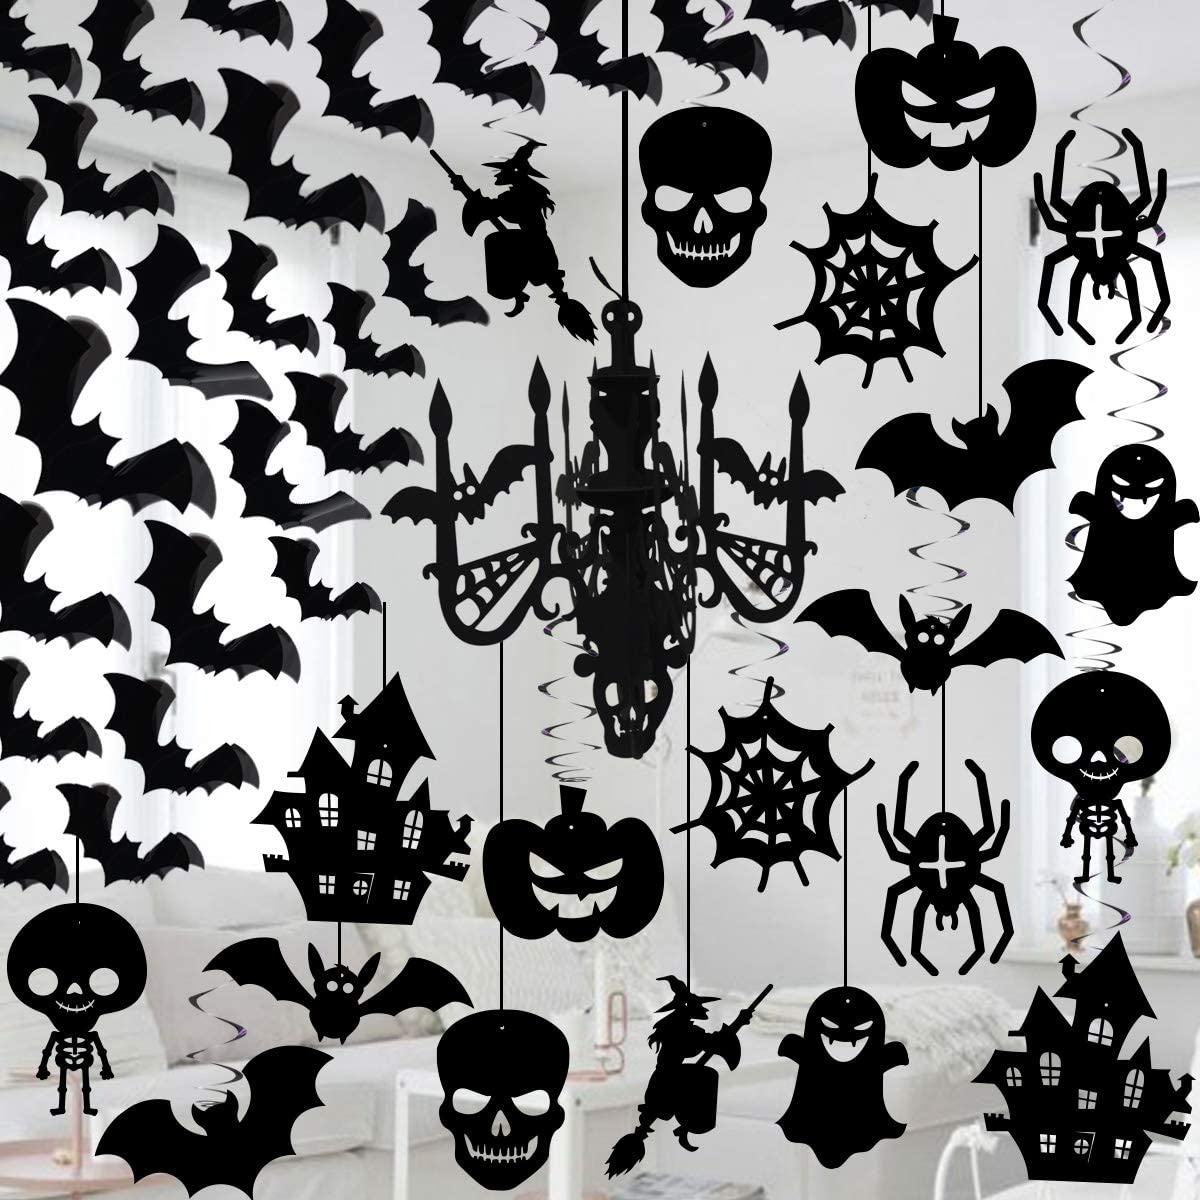 Halloween 3D Chandelier Hanging, foil Swirl Decorations and 3D Waterproof Bat Wall Stickers Set by ForceMaxe